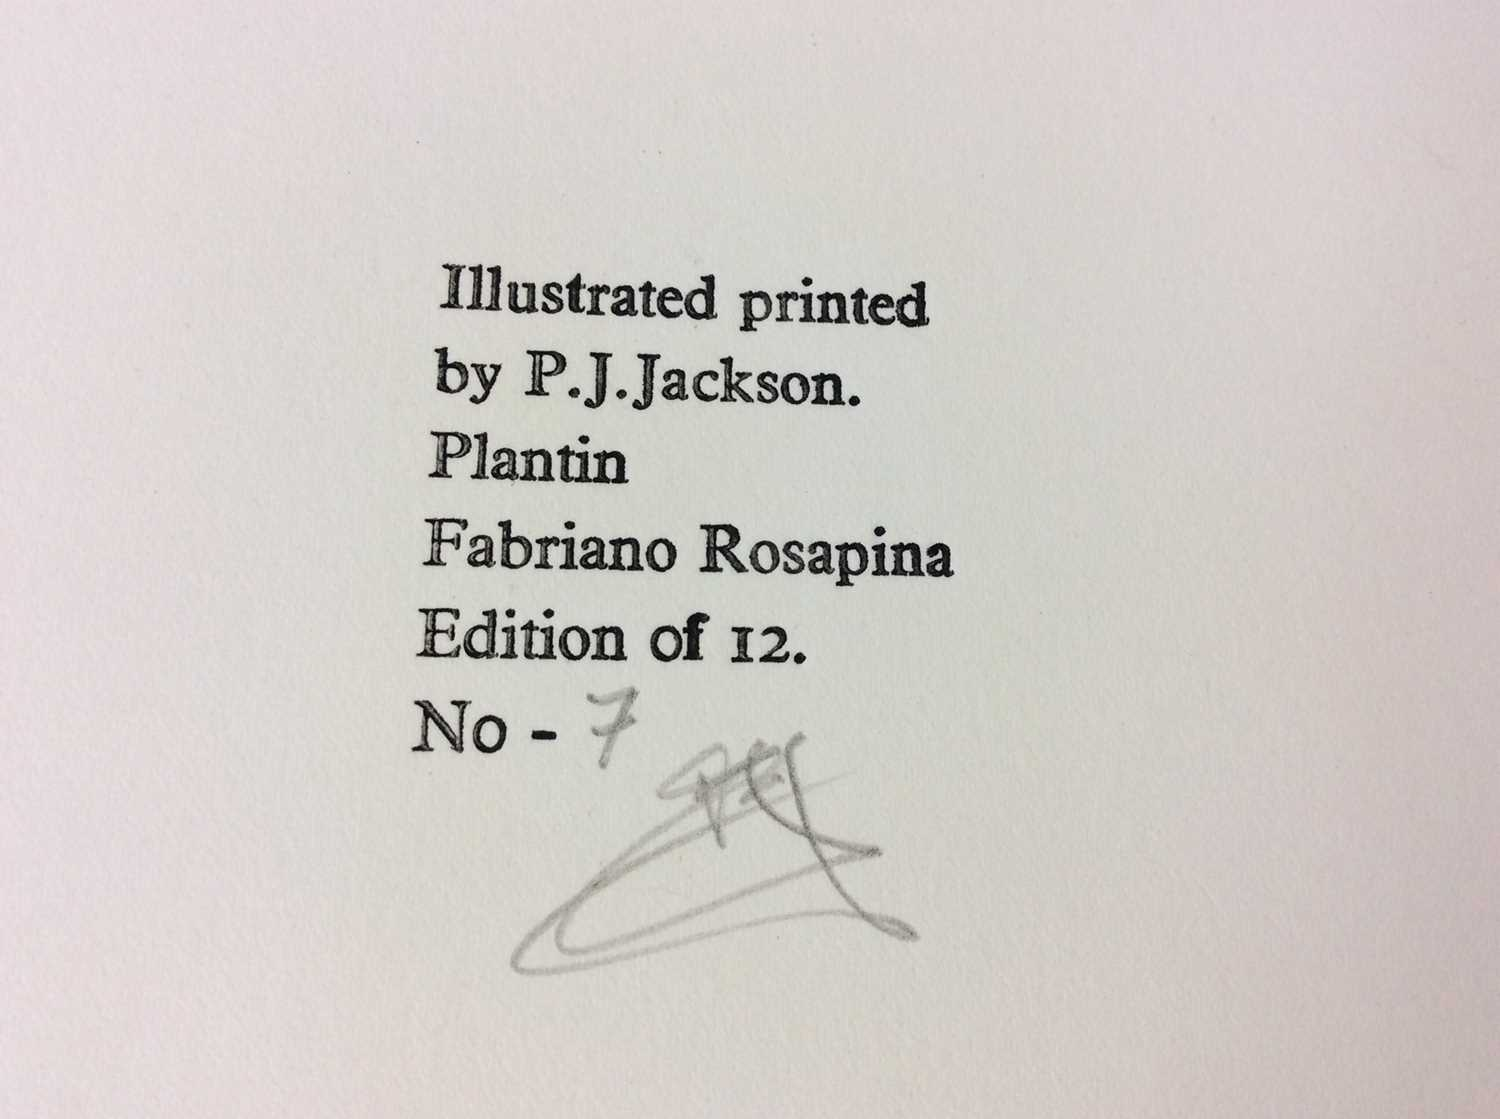 P. J. Jackson - three very limited edition private publications - Image 11 of 11